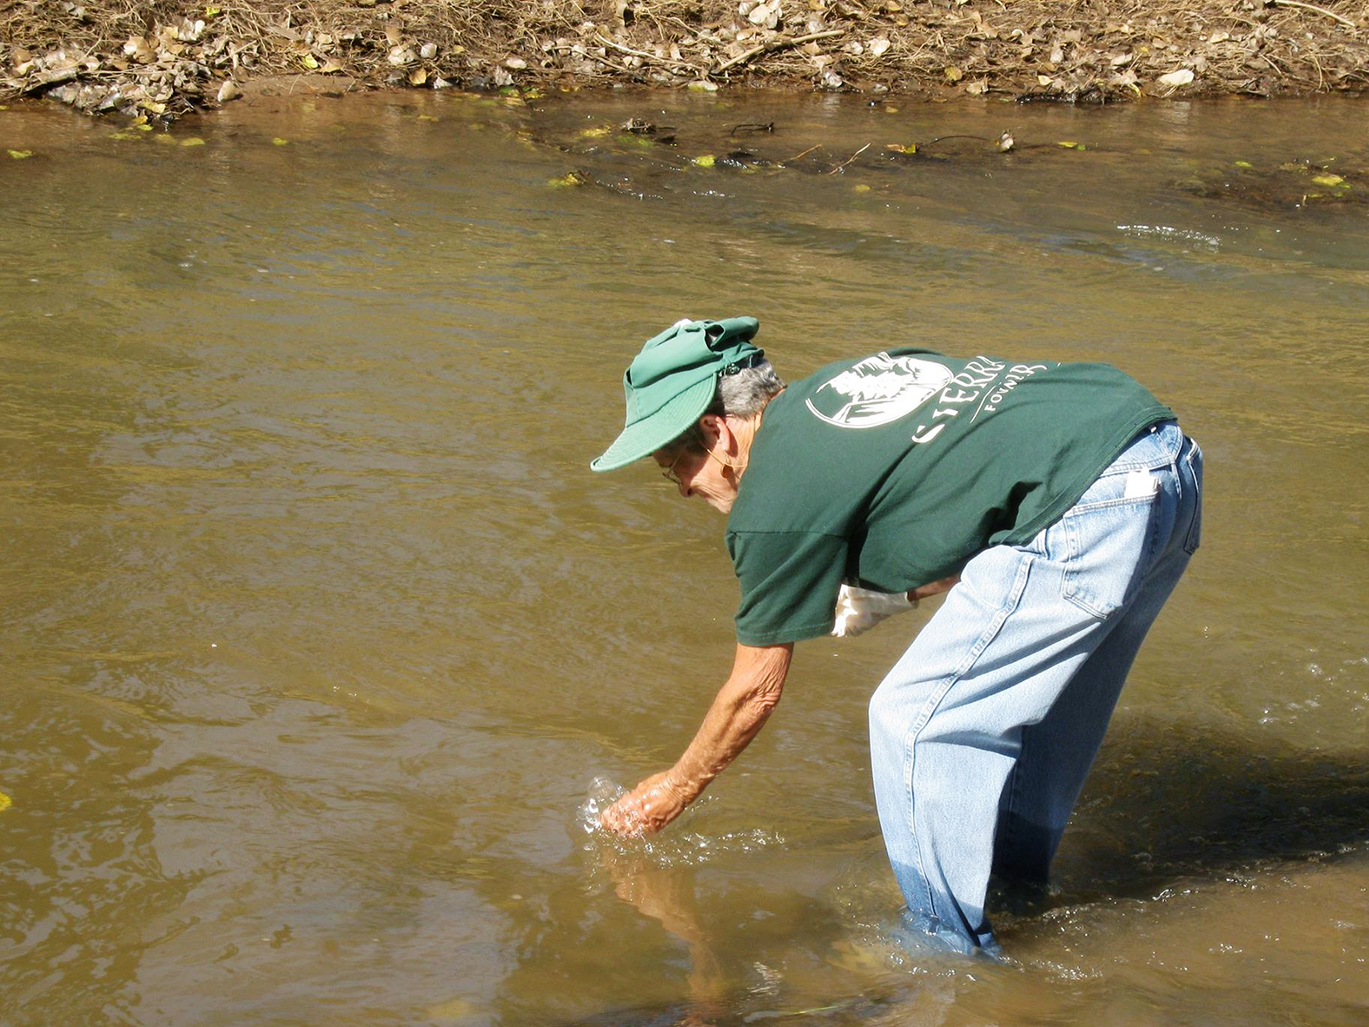 Tricia Gerrodette tests water quality in the San Pedro River.